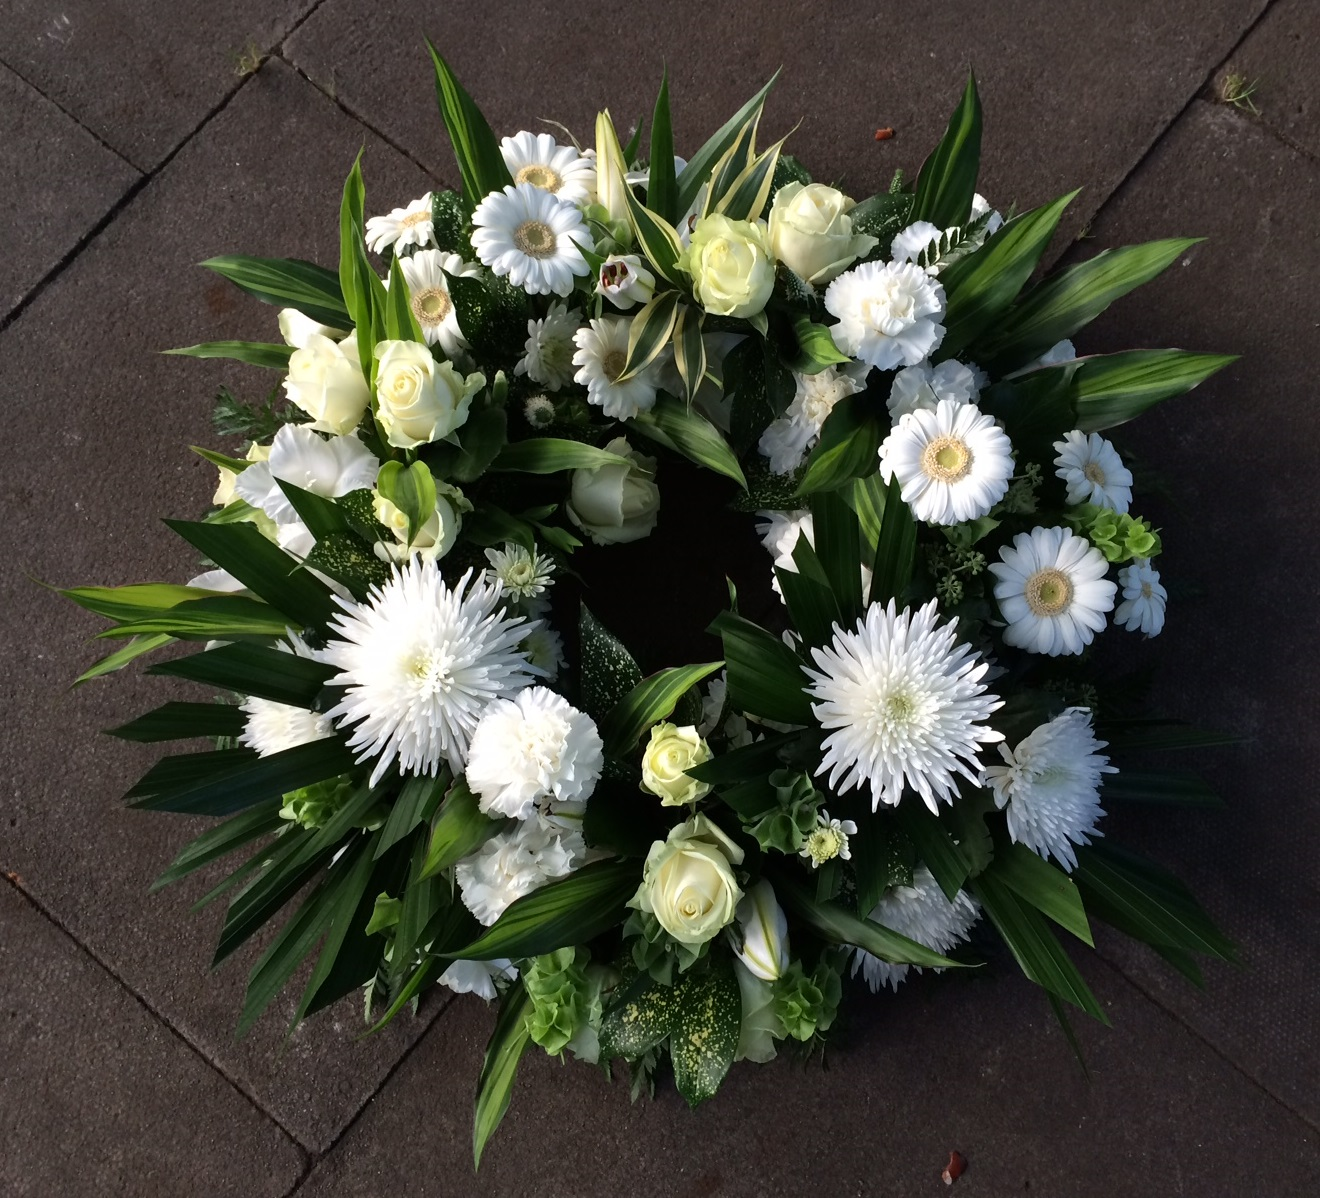 Funeral flowers the artwork of ordering them accordingly llr pro image result for funeral flowers izmirmasajfo Image collections